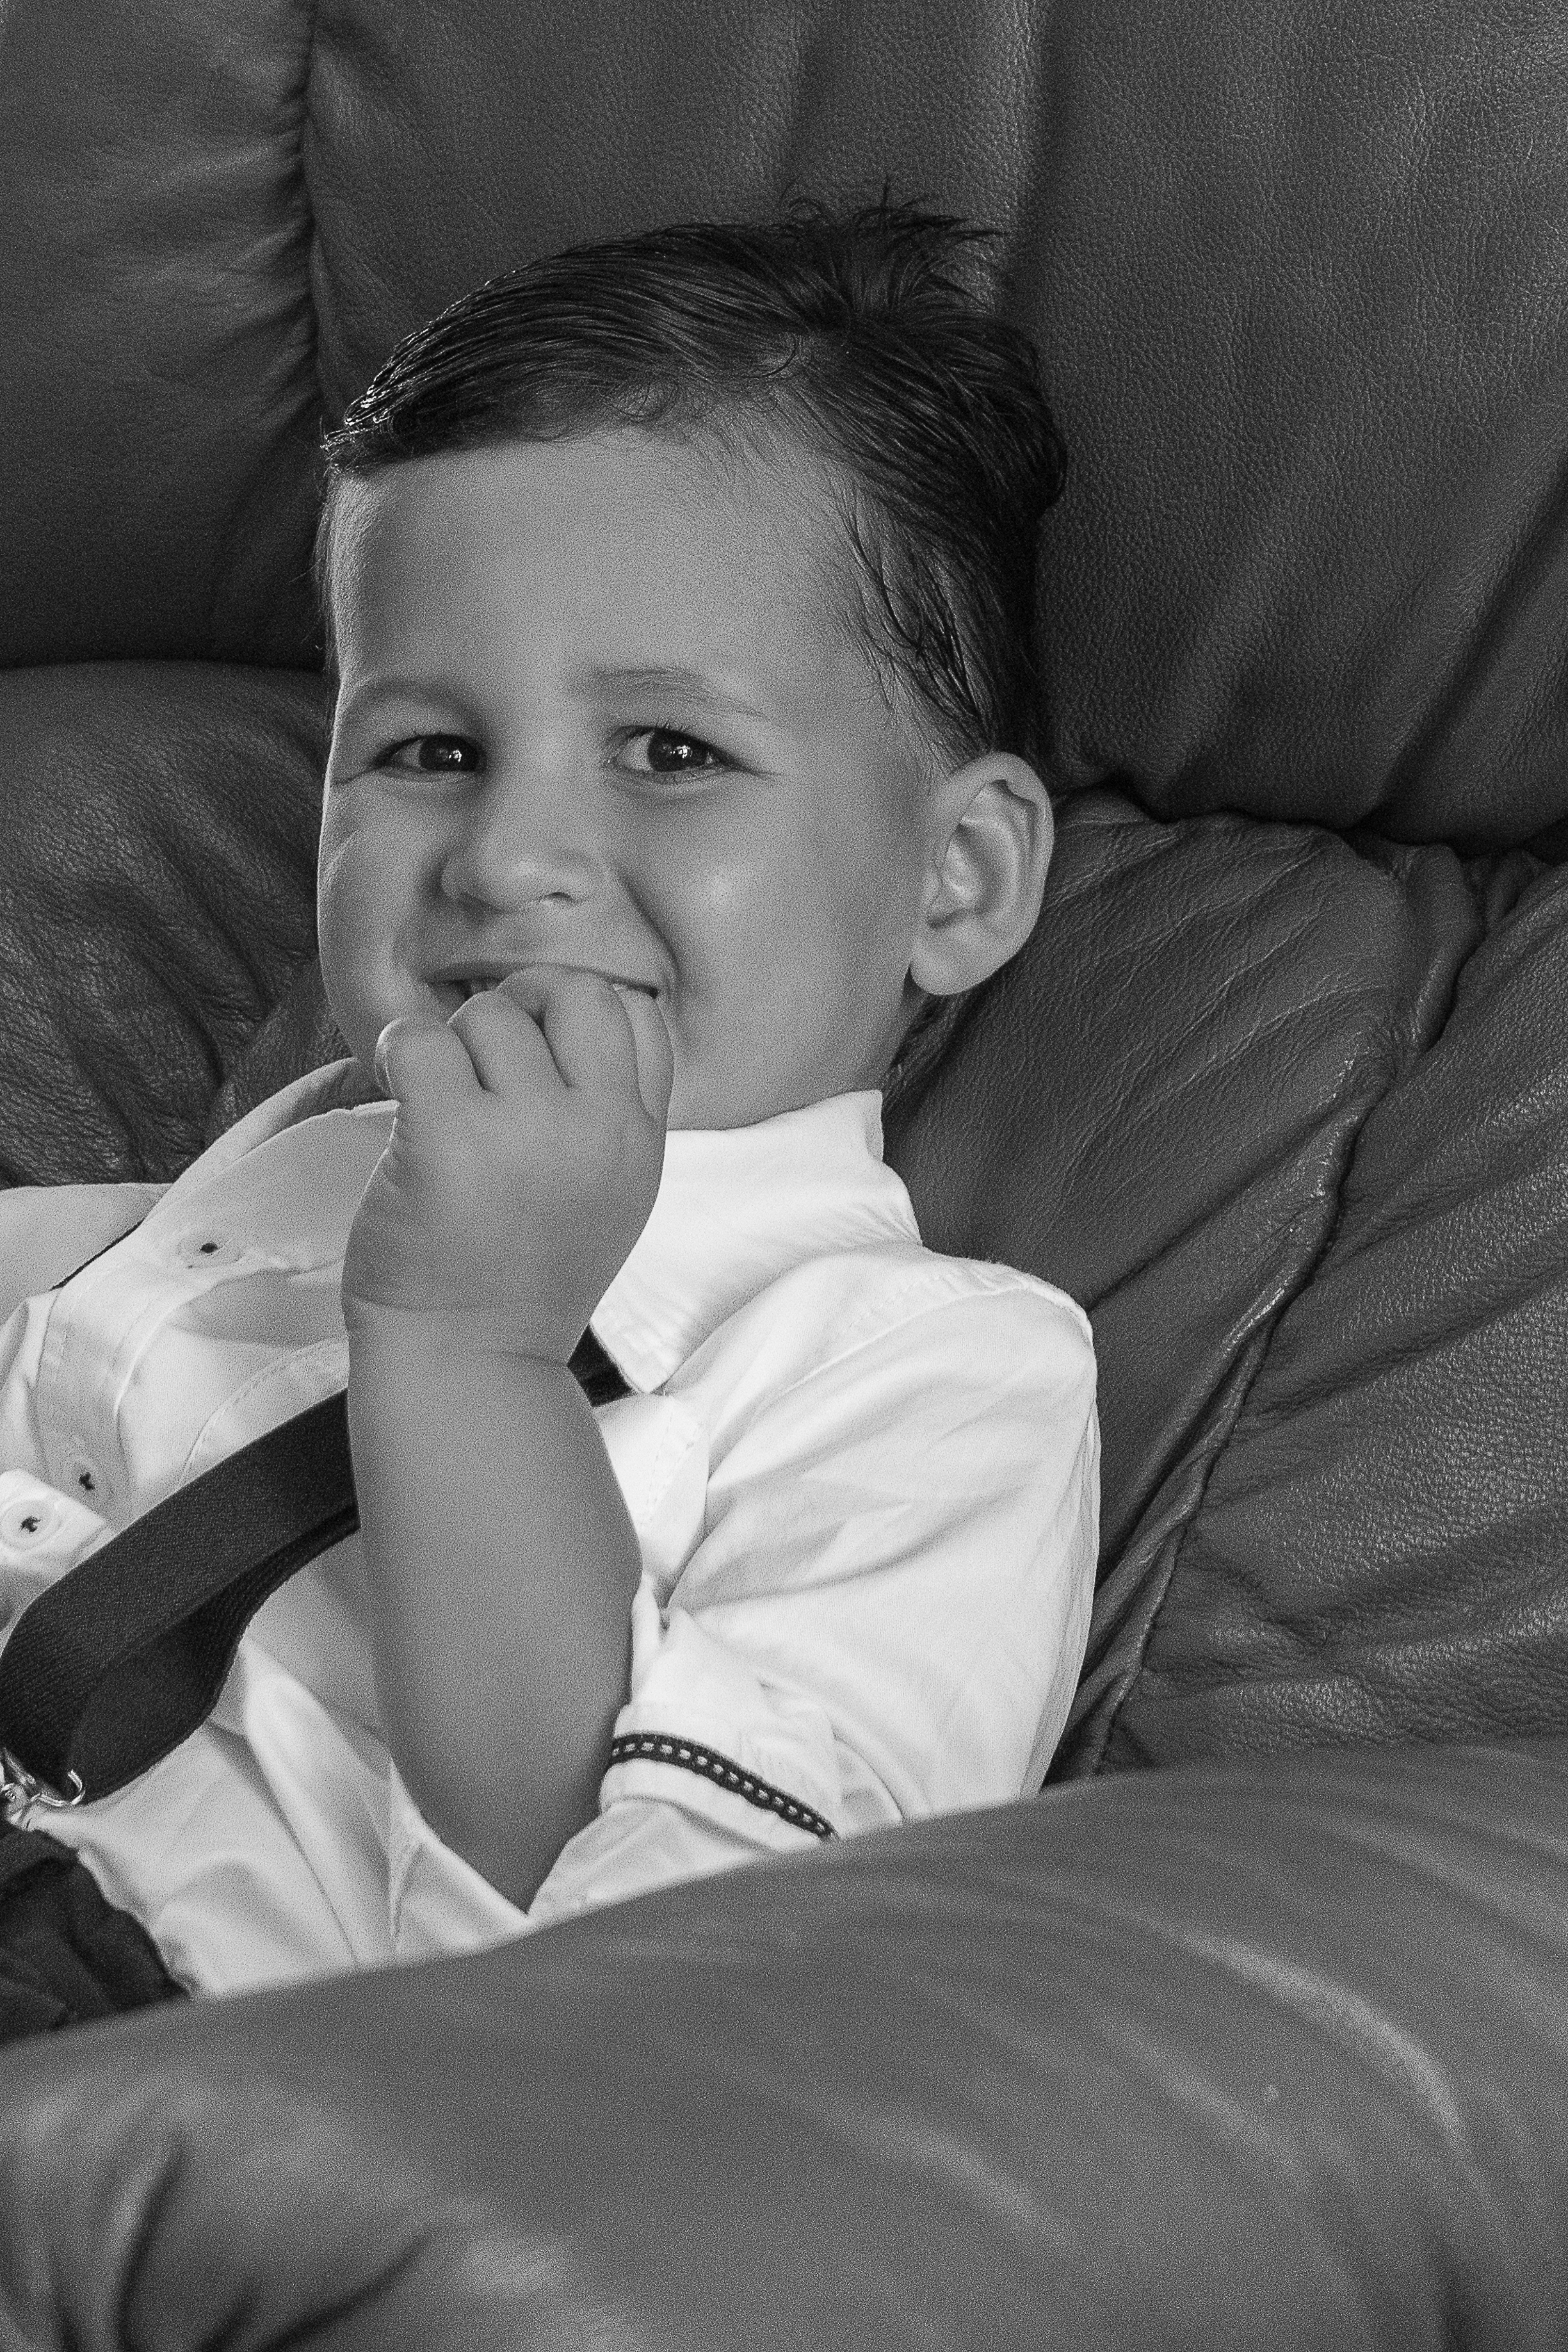 little boy sitting on the couch in suit